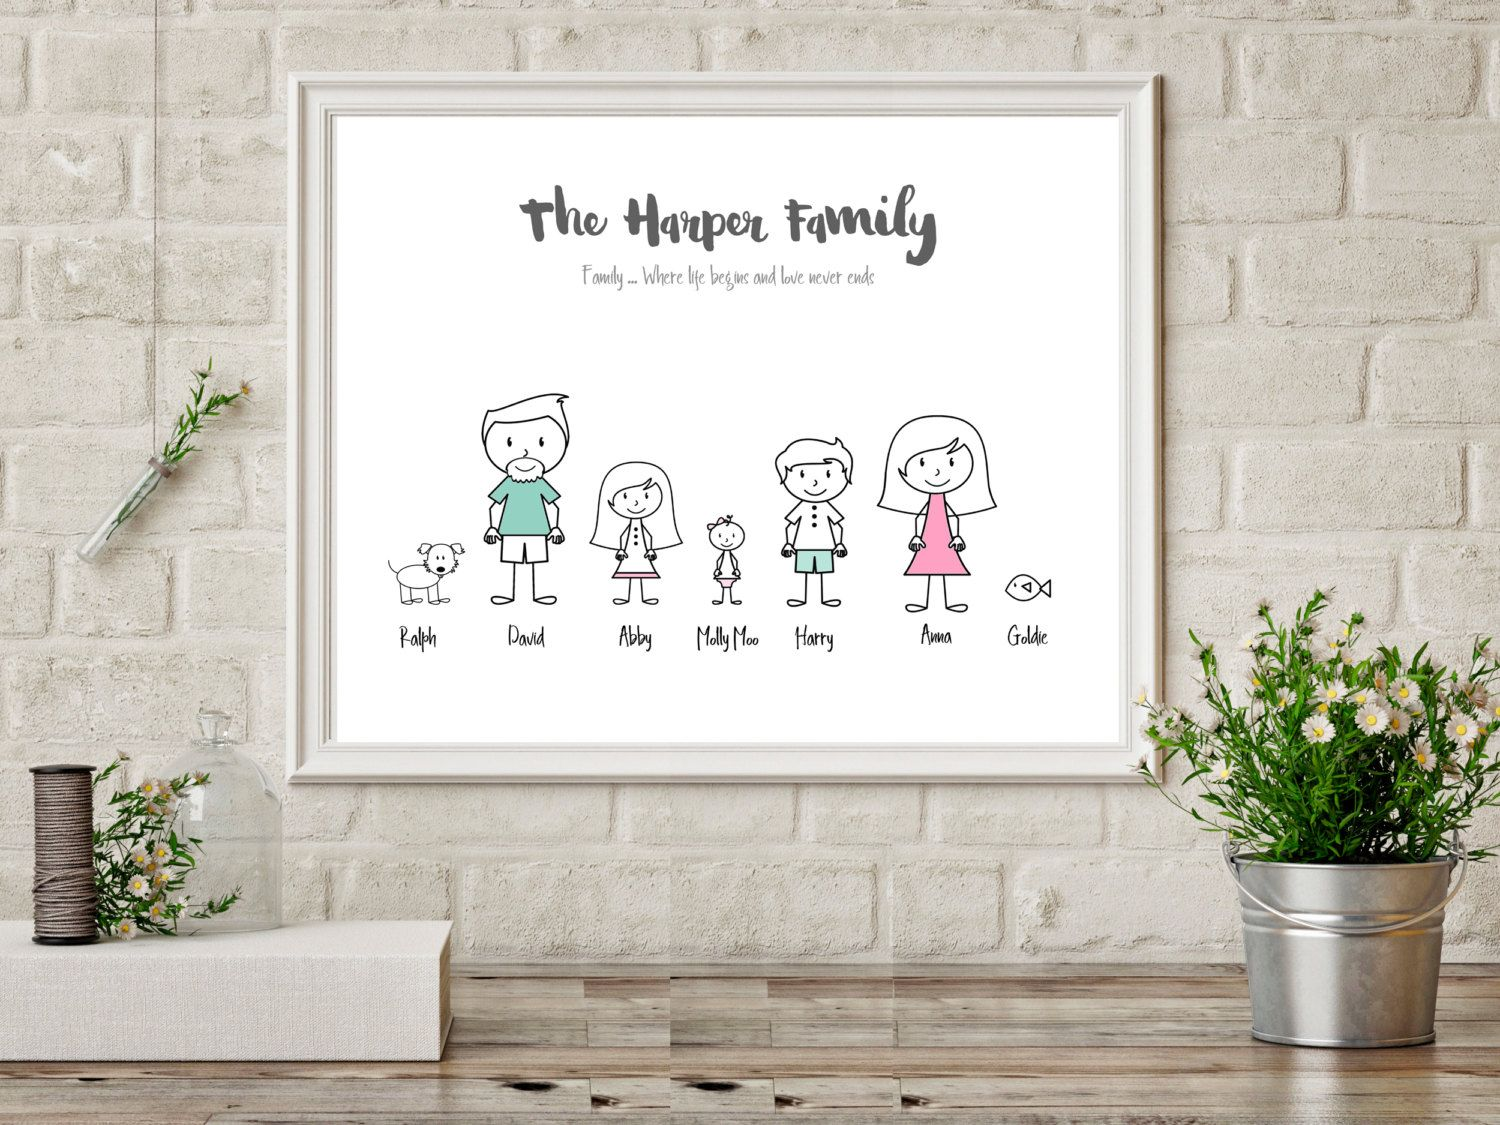 Personalized family print family name sign family picture personalized family print family name sign family picture family motto personalised family gifts parents anniversary new home gift mum by craftycowdesign by negle Images